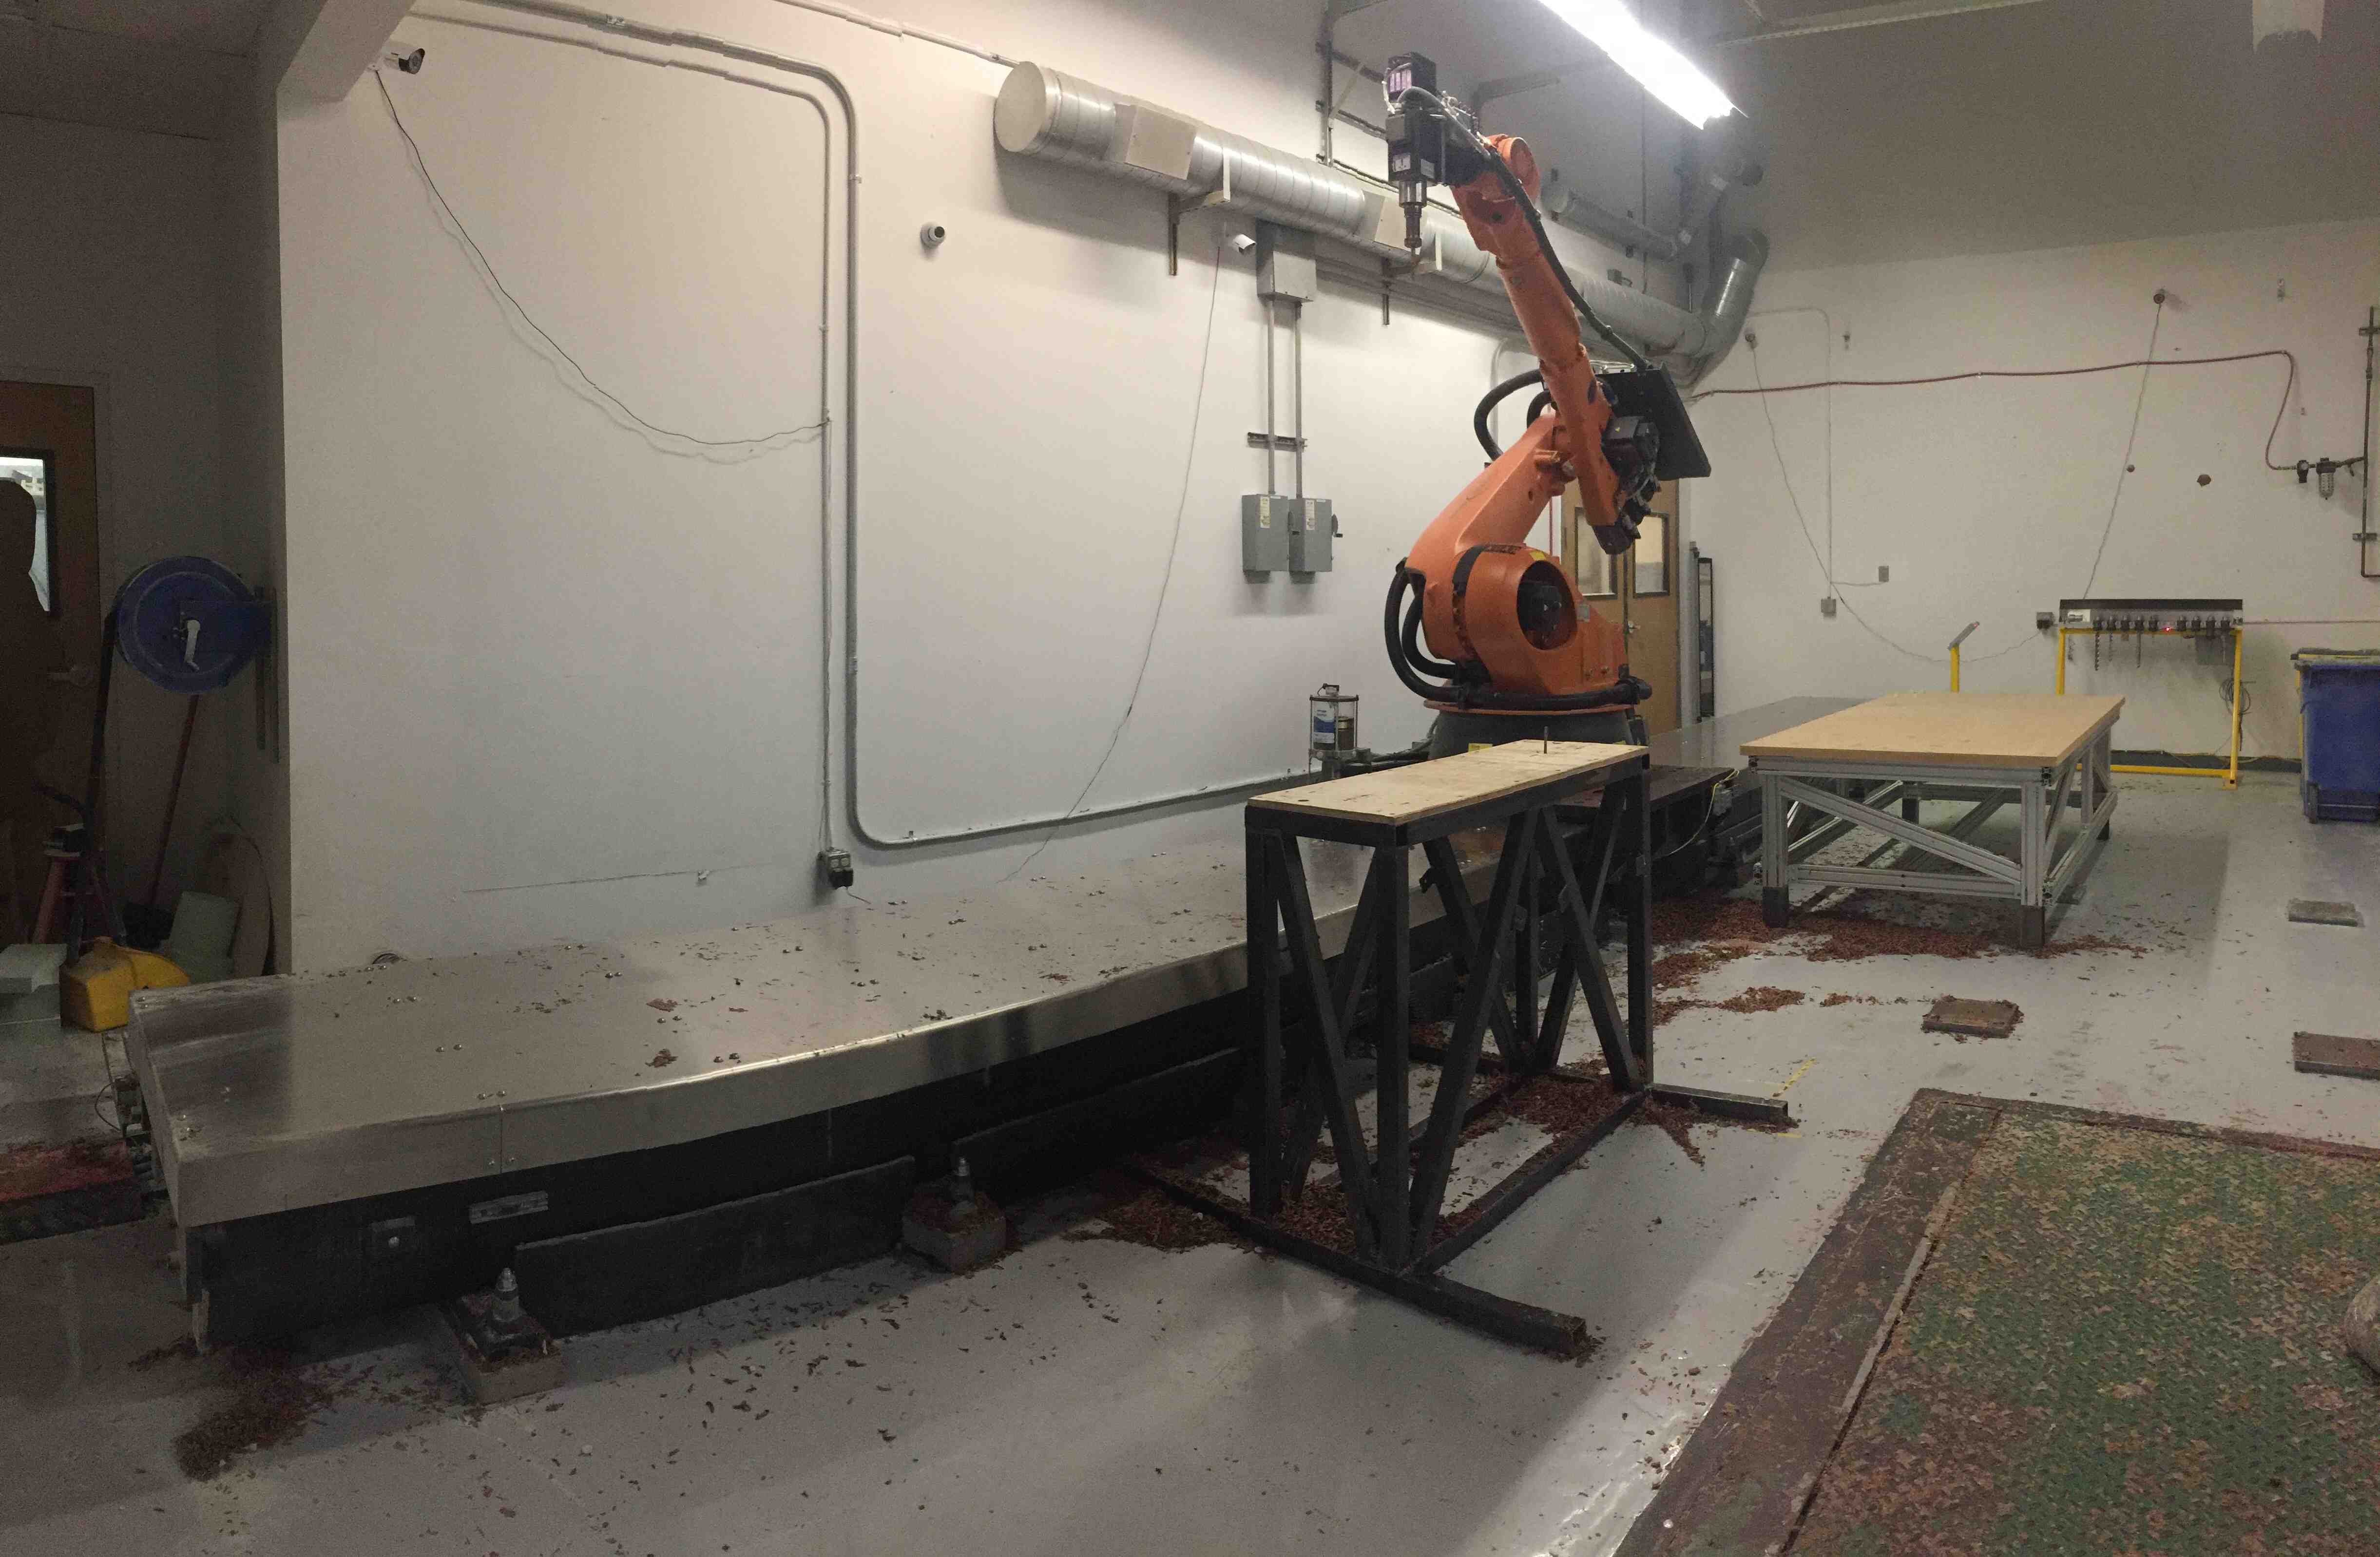 KUKA KR100L80HA ROBOT MILLING CELL, 6-AXIS ROBOT ON 26′ LINEAR RAIL, 10 POS. TOOL GARAGE, HIGH SPEED SPINDLE, YEAR 2011